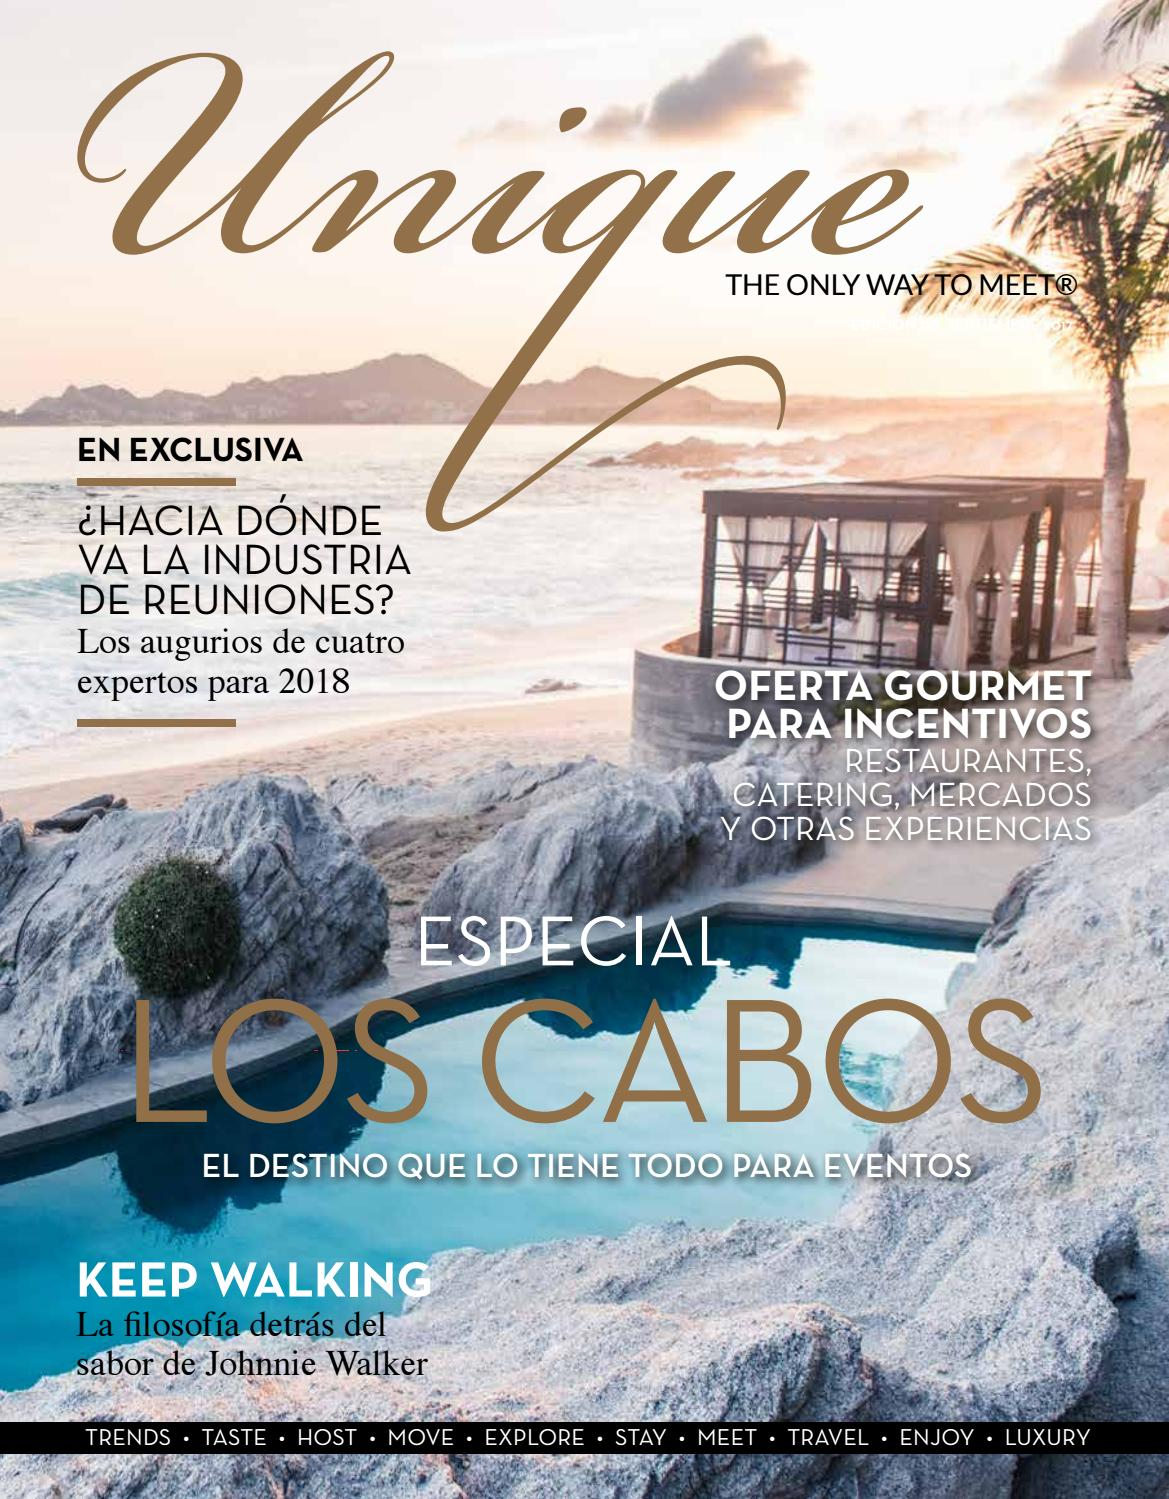 Unique The Only The Way To Meet 08 by Latinamerica Meetings - issuu b7b6ef064890